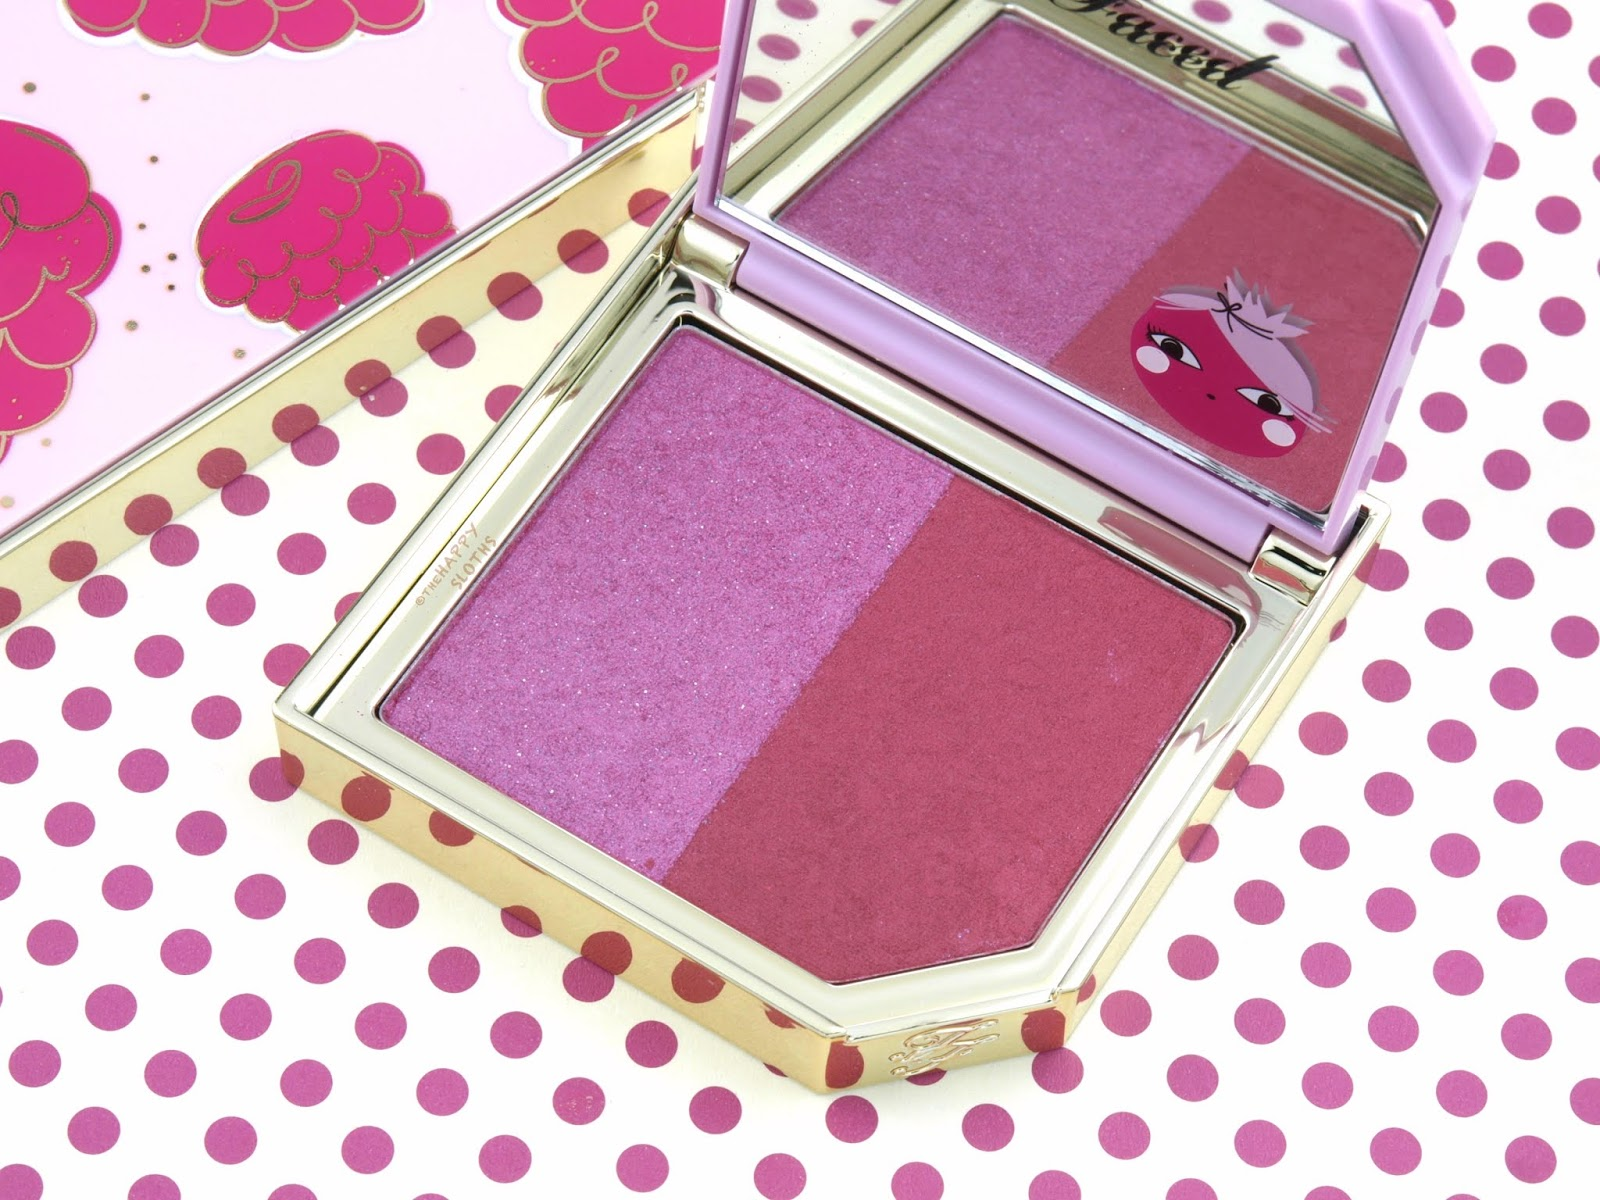 Edition Tutti Frutti Christmas Fruit Cake Makeup Collection by Too Faced #20